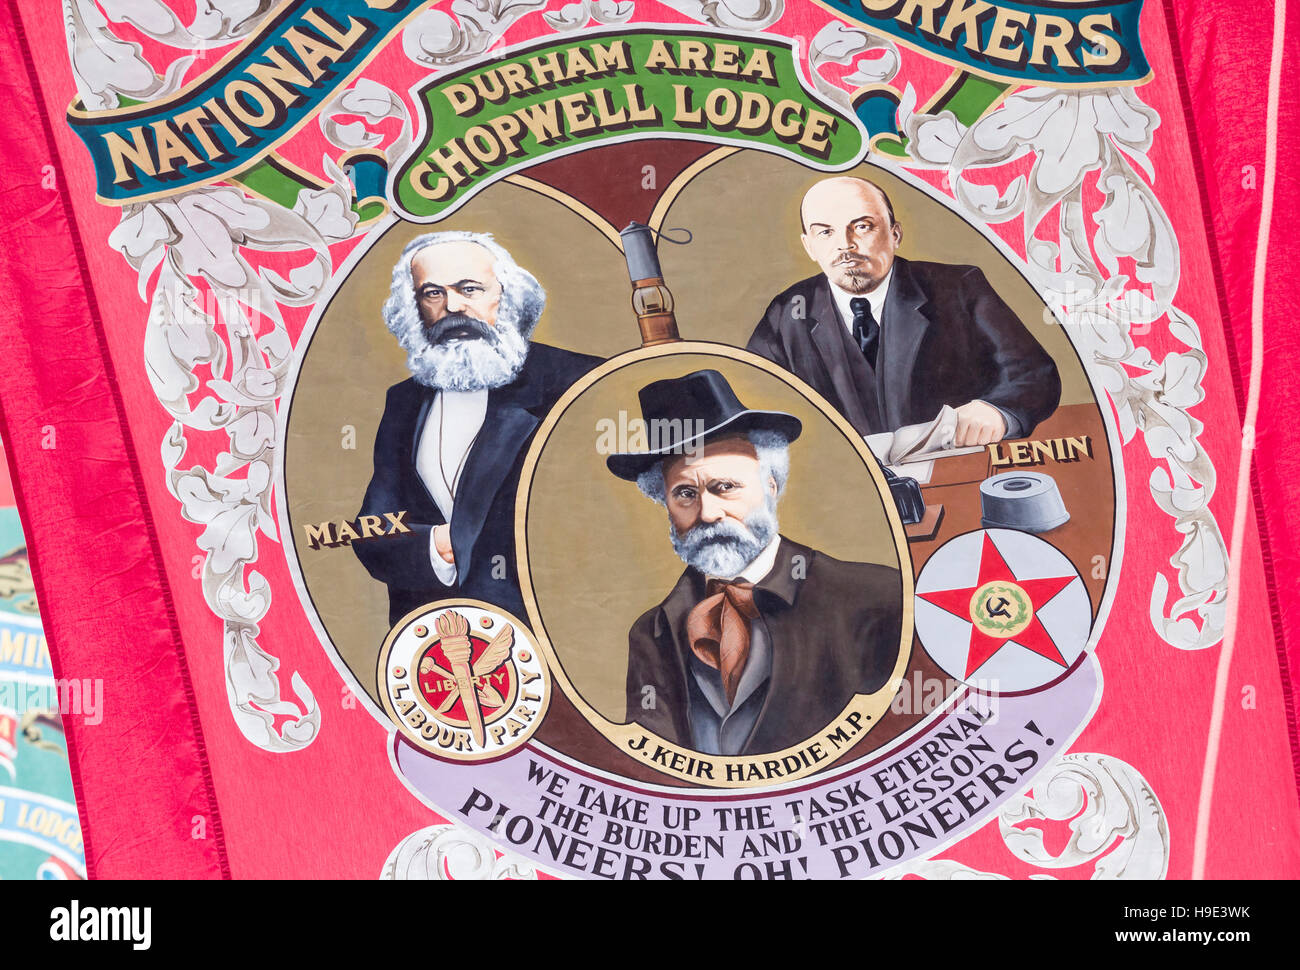 James Keir Hardie, Karl Marx and Lenin on banner at Durham Miner`s Gala. Durham. England. UK - Stock Image